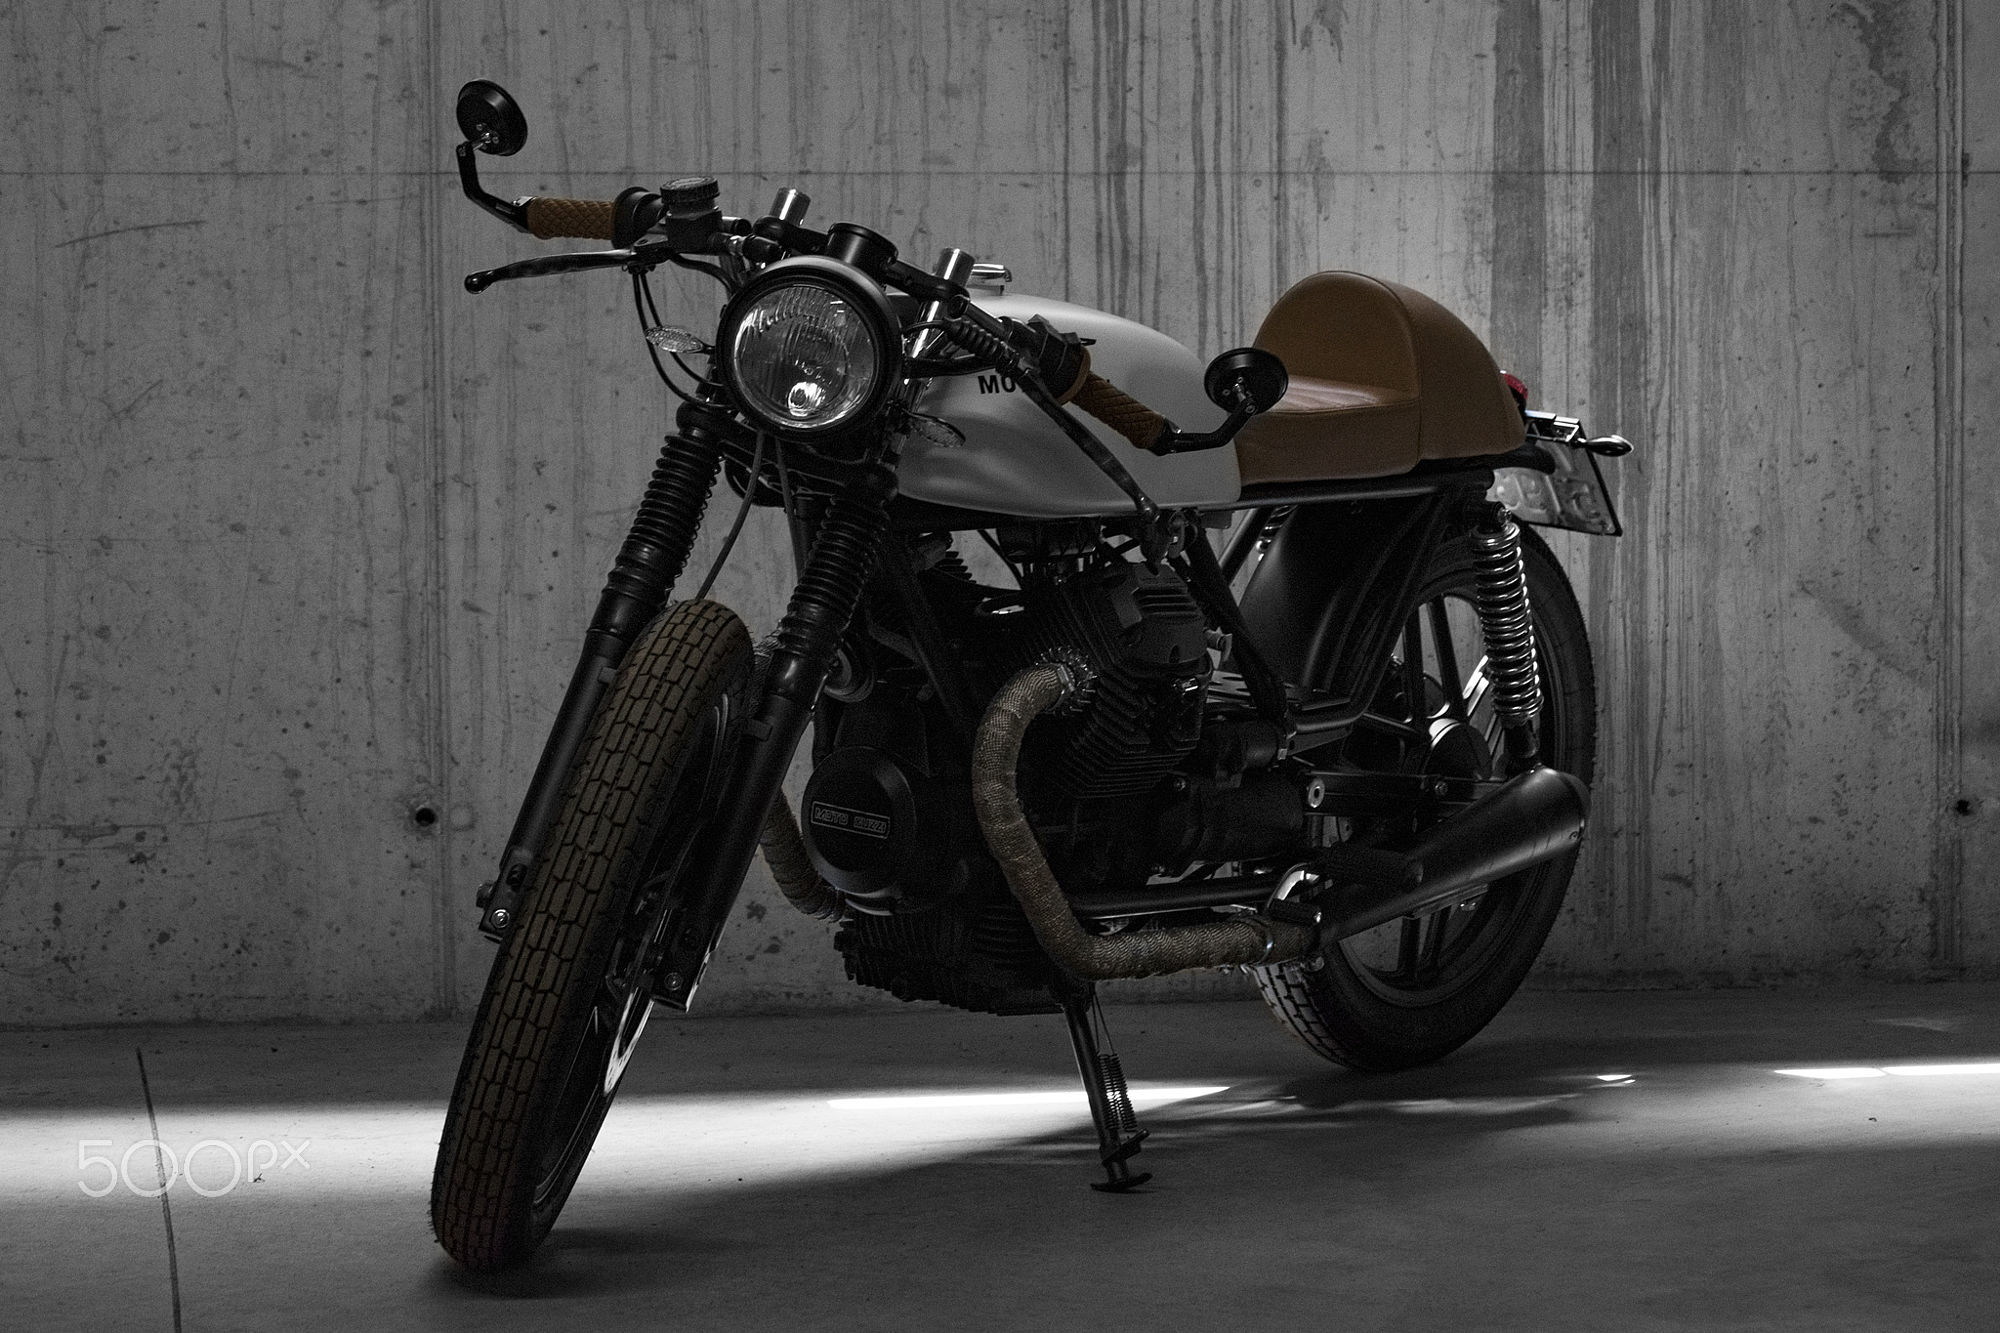 Moto Guzzi V35 converted in Cafe Racer HD Wallpaper From Gallsource.com